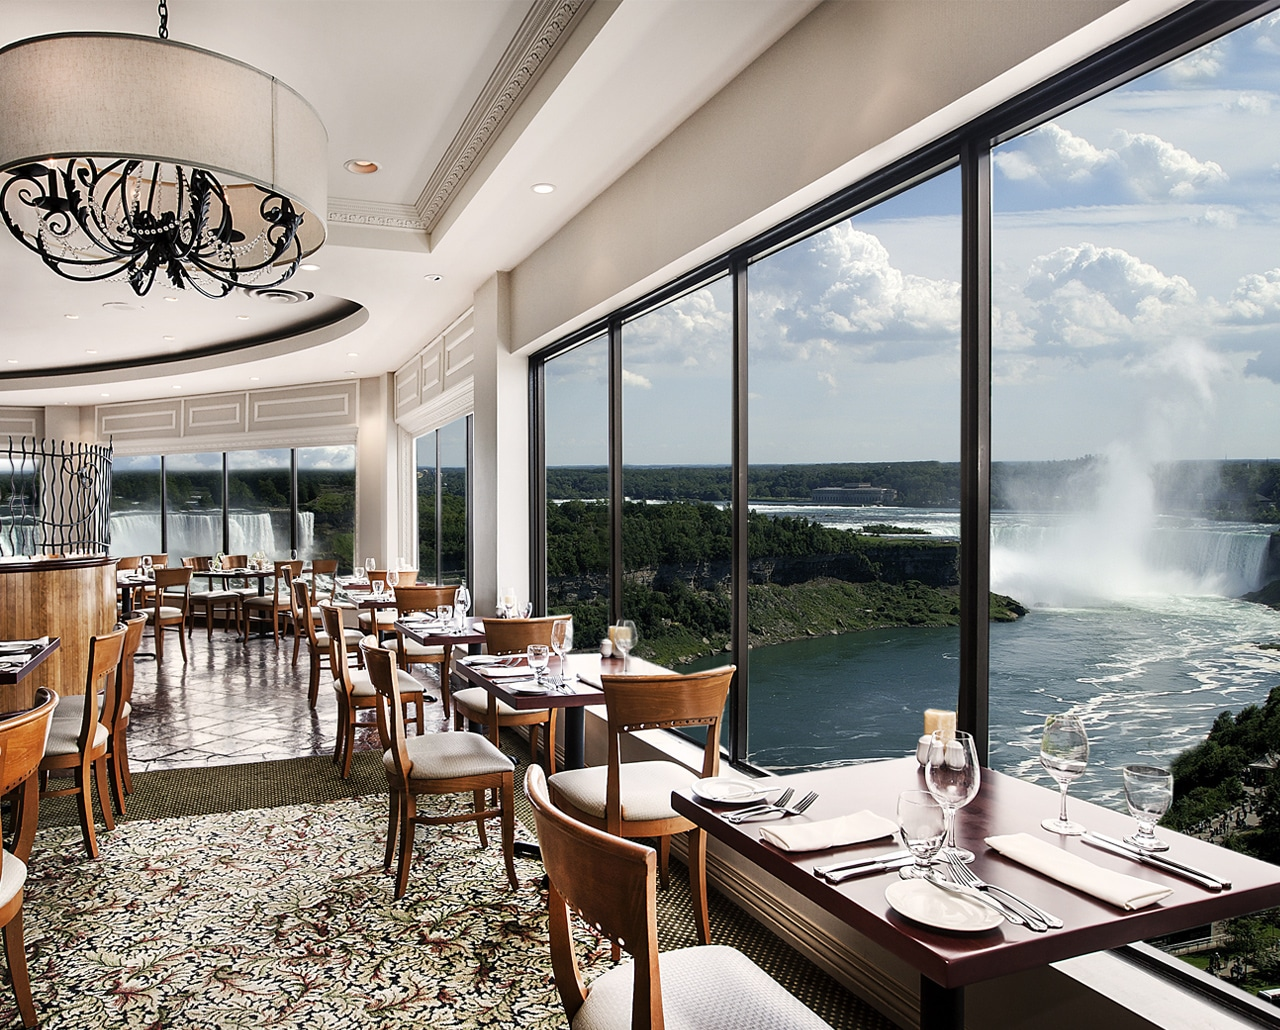 The Rainbow Room By Massimo Capra Niagara Falls Restaurants